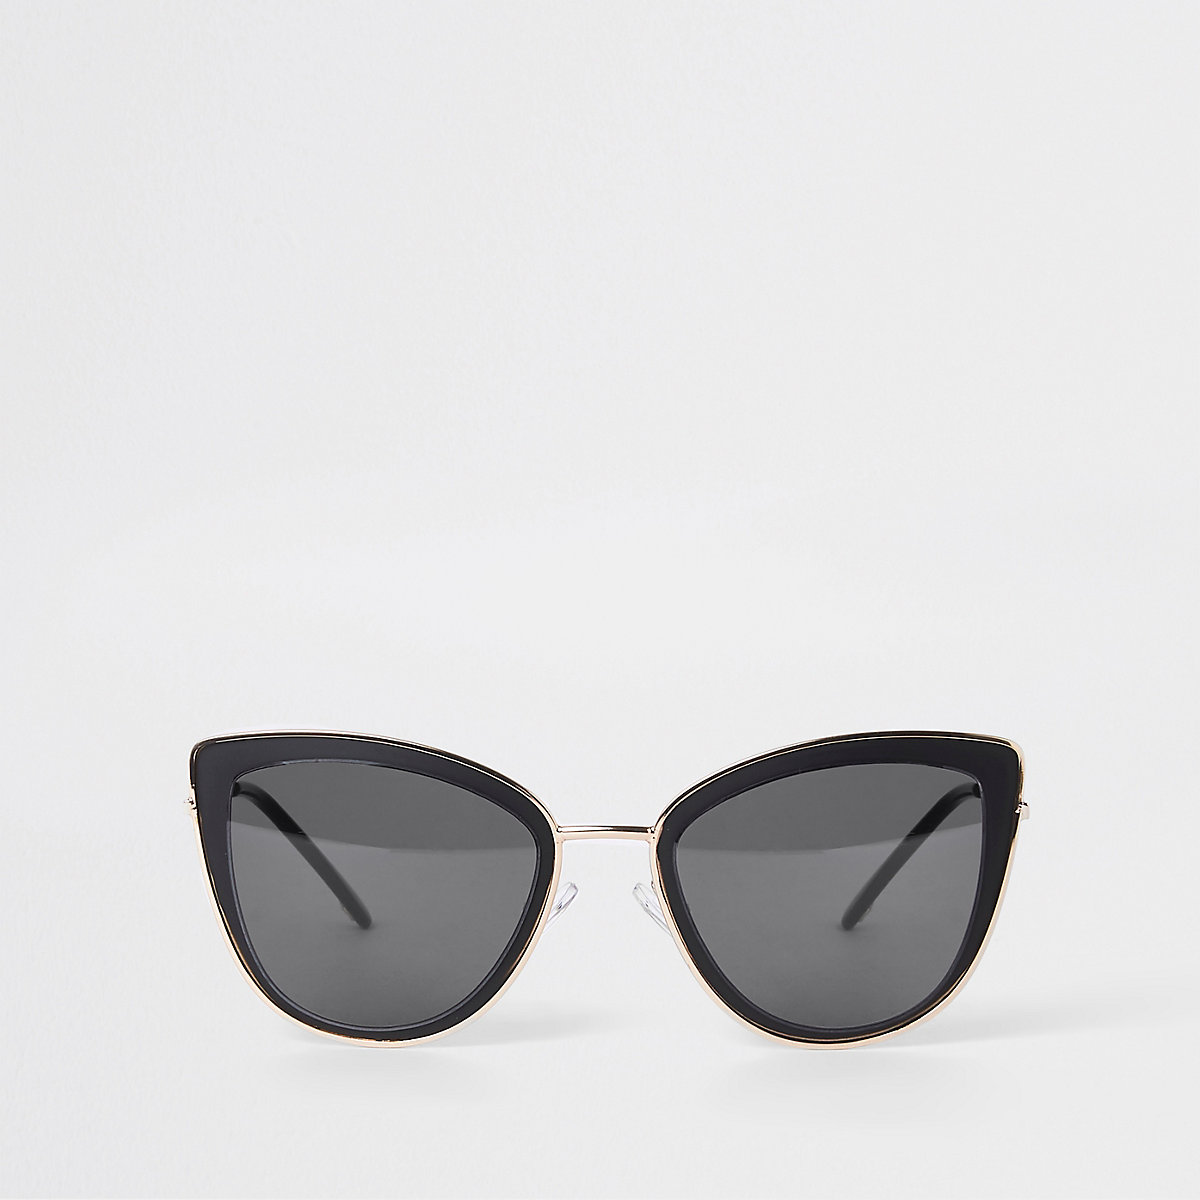 Black gold tone trim cat eye sunglasses